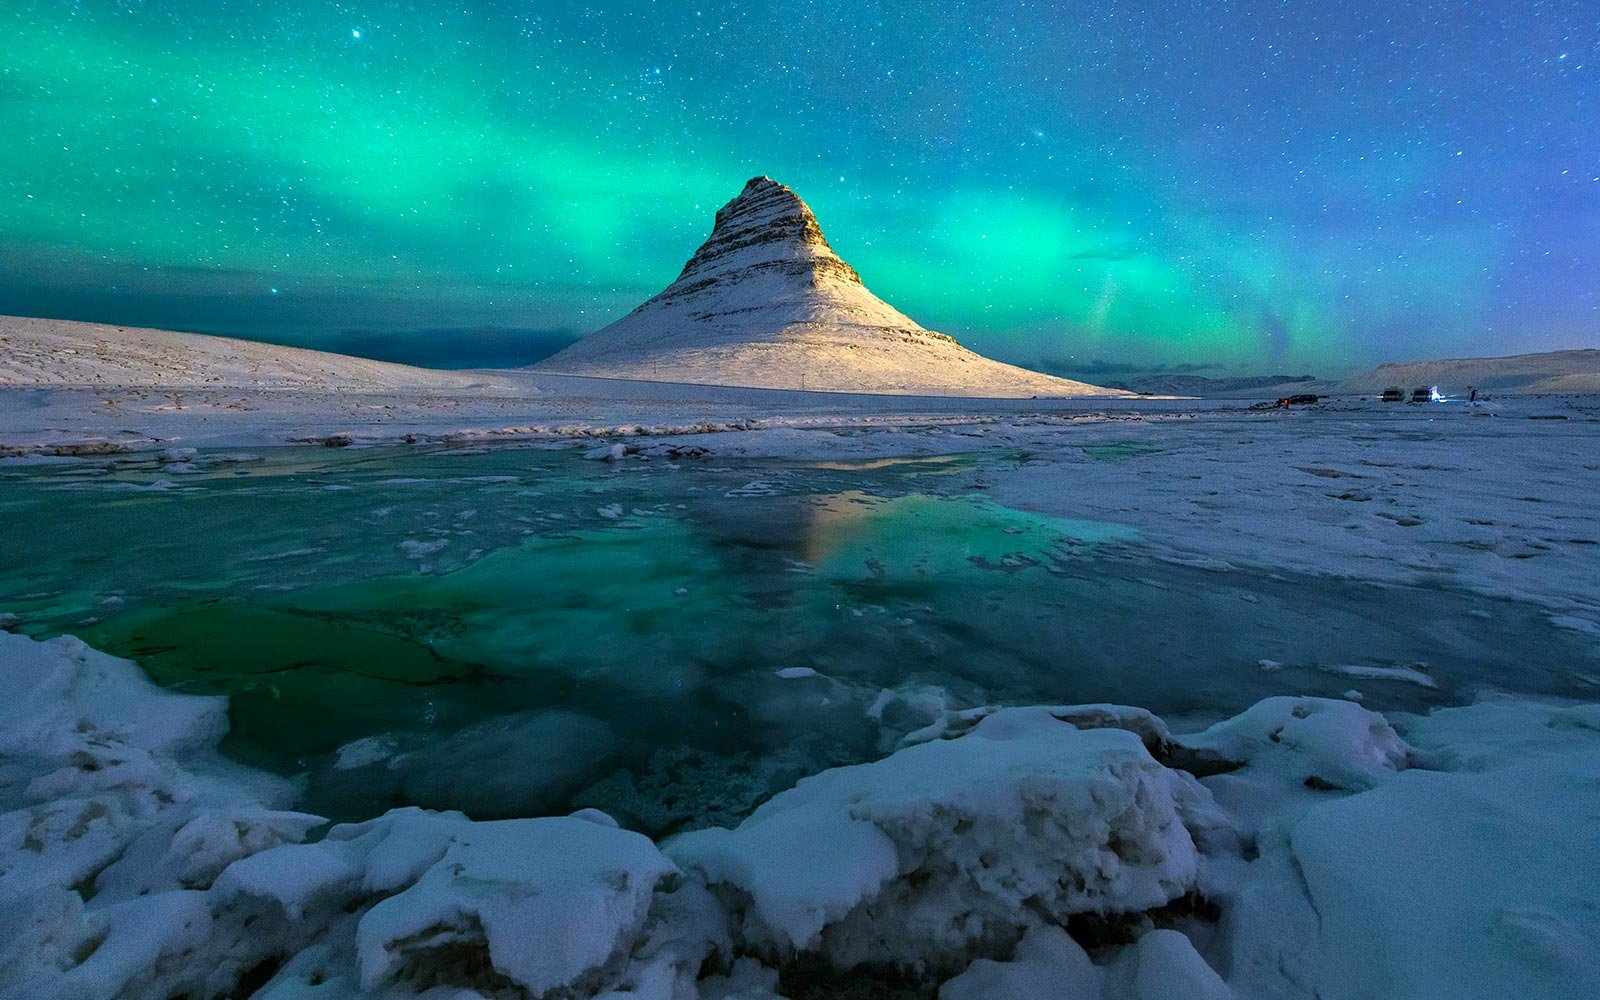 Fall Out 4 Hd Wallpapers Fly To Iceland This December For 99 Travel Leisure